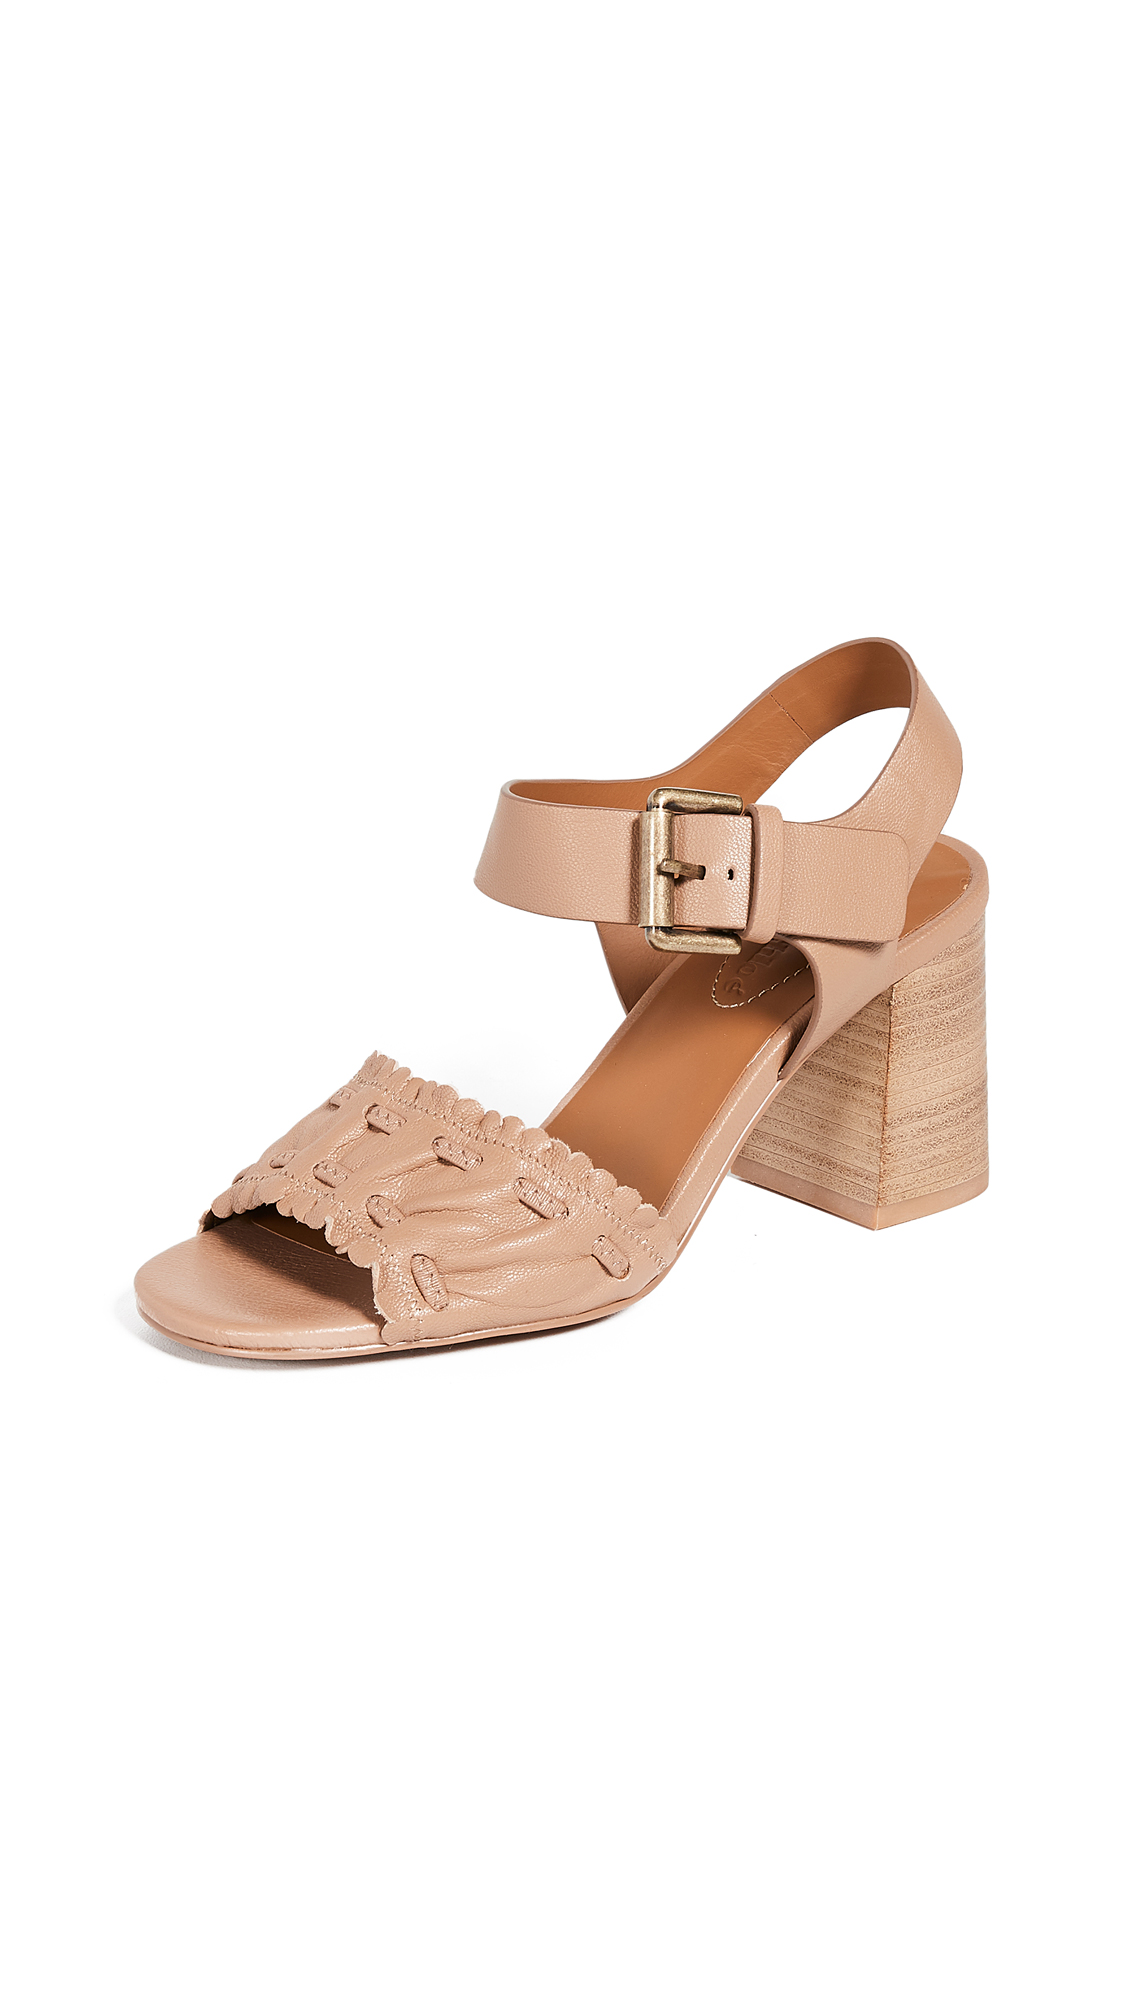 See by Chloe Jane City Sandals - Biscotto